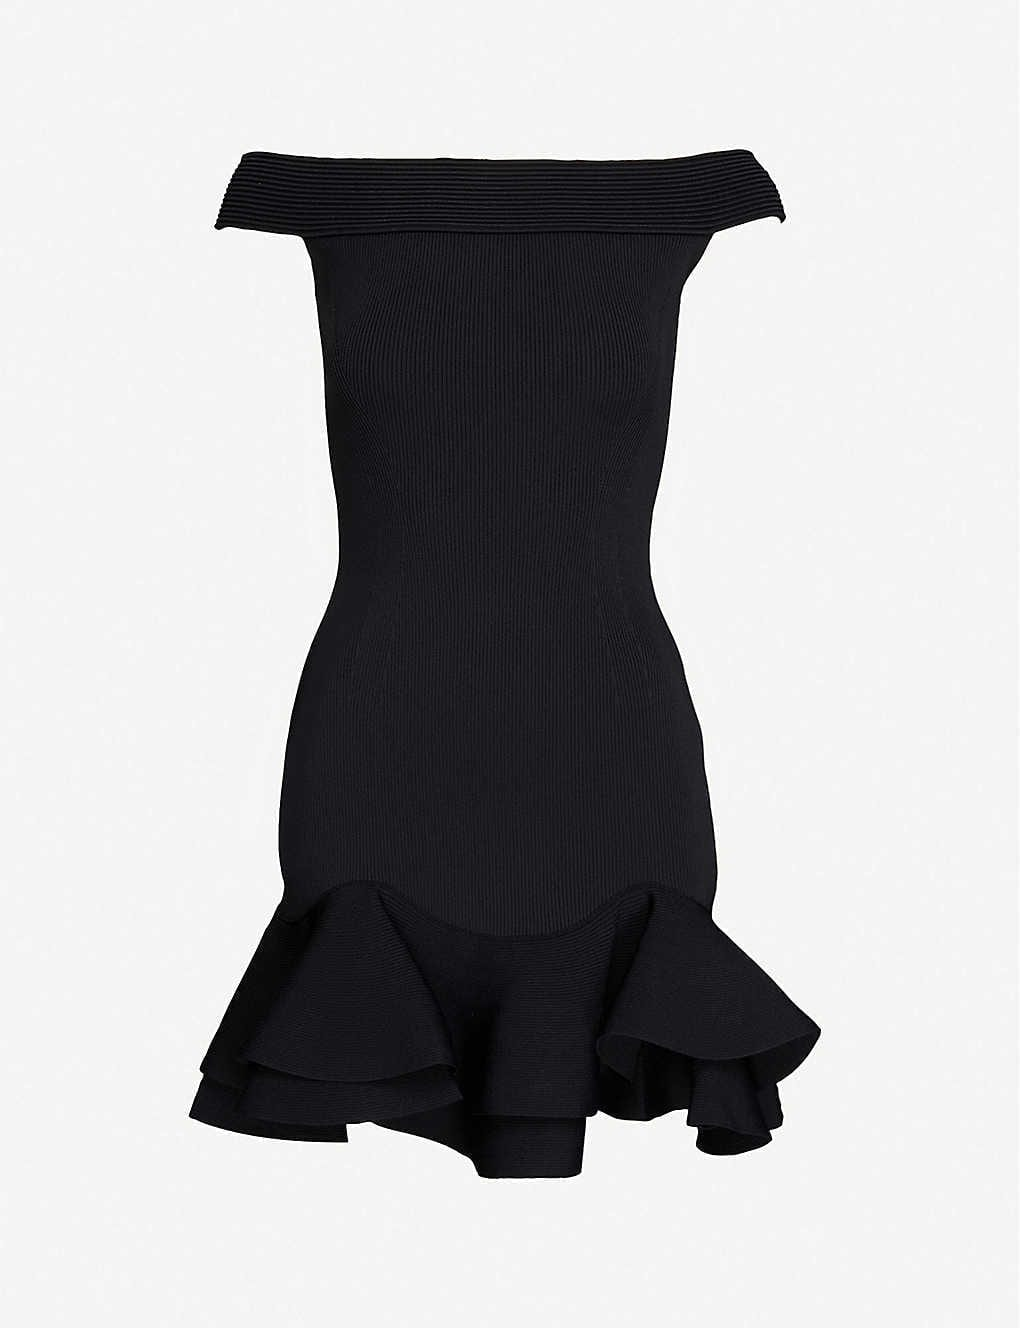 ALEXANDER MCQUEEN Off-the-shoulder Knitted Mini Dress